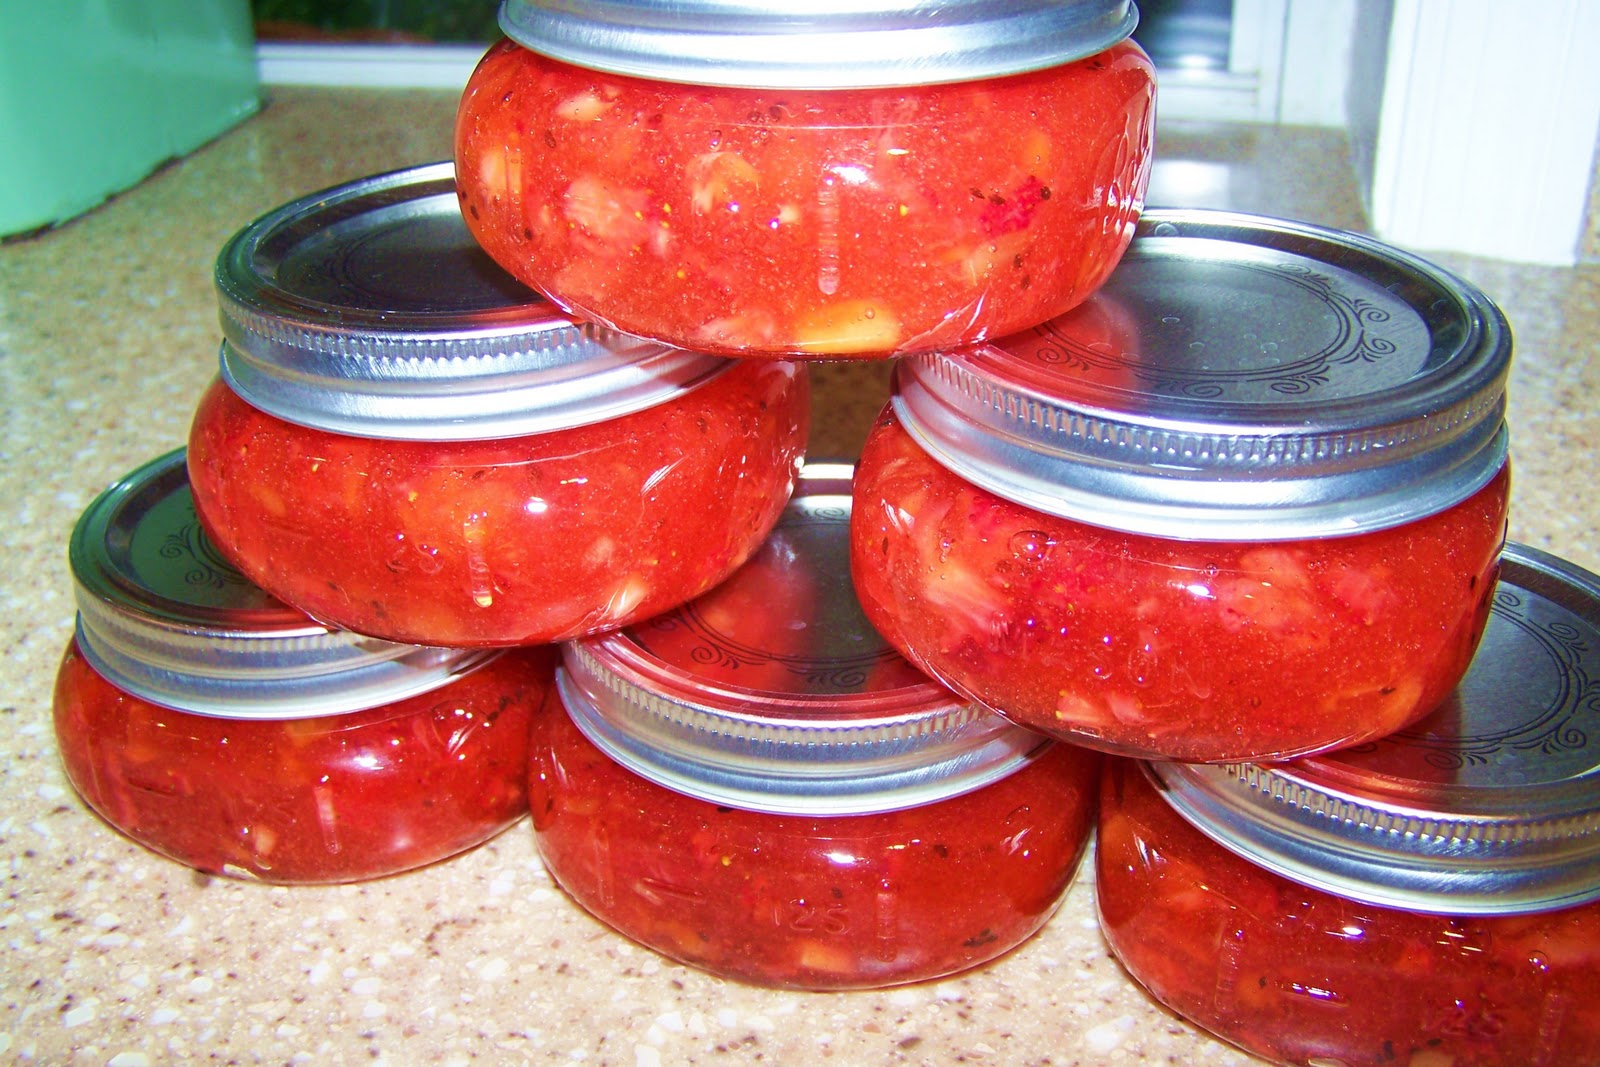 made strawberry/kiwi jam! I feel so Martha - ha! It was so easy and ...